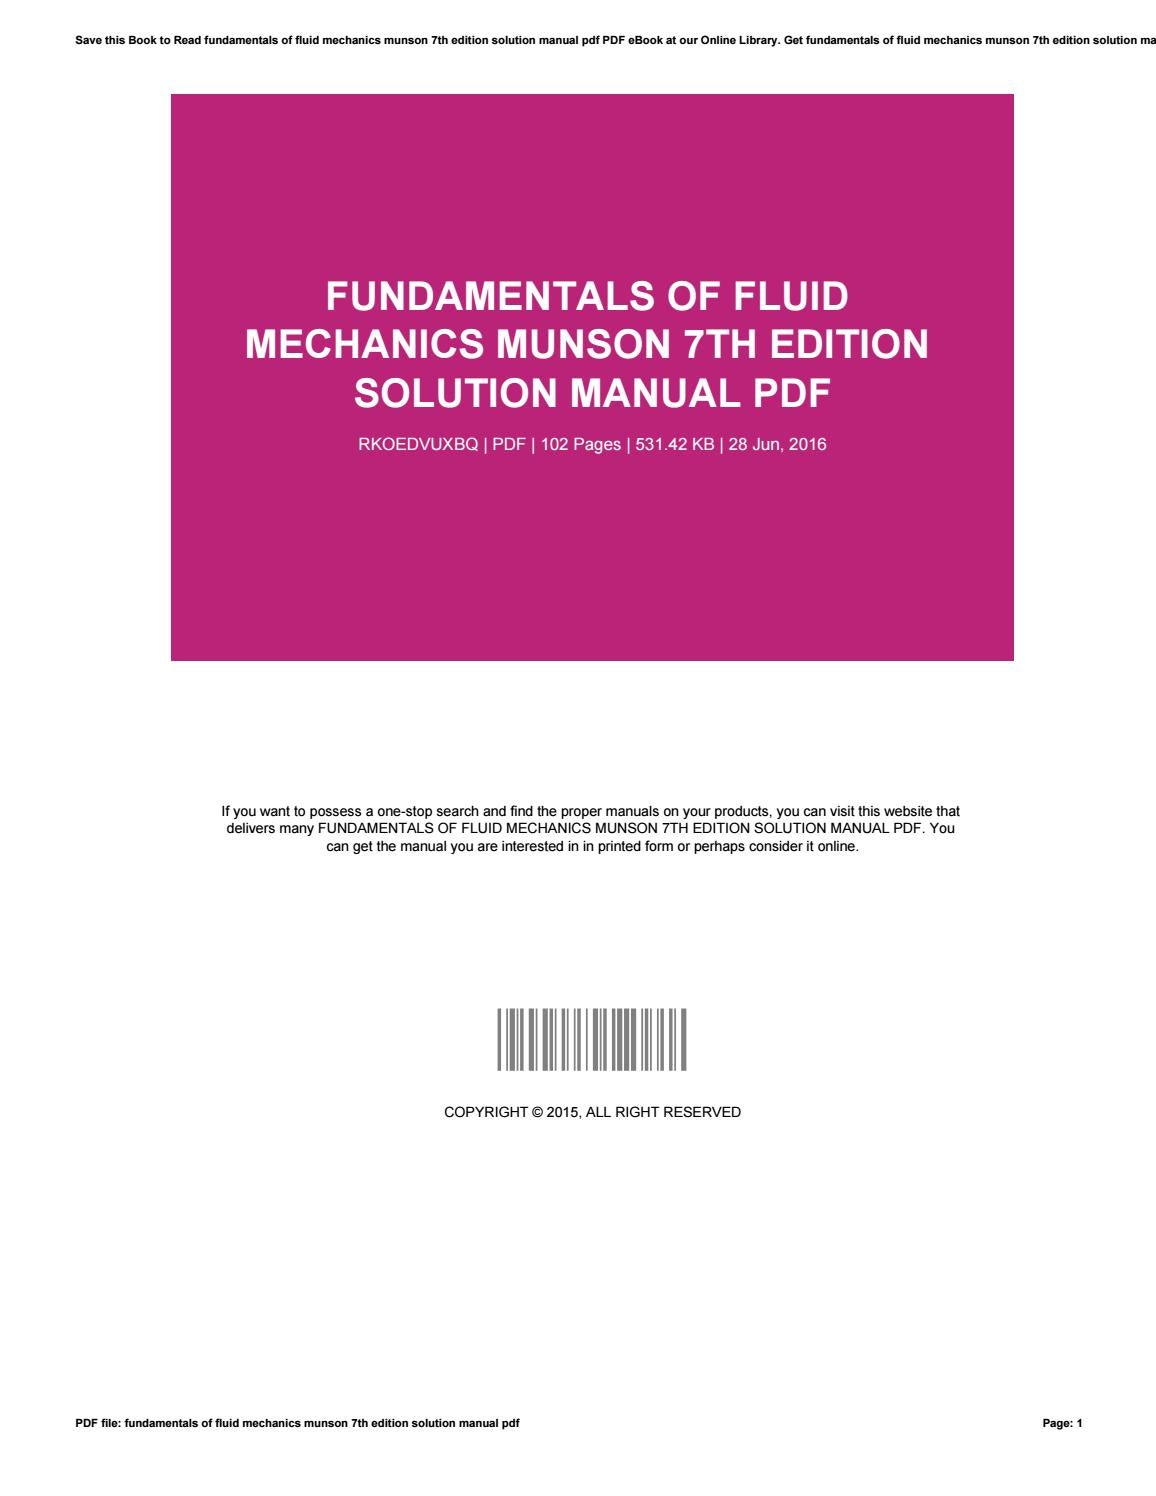 Fundamentals of fluid mechanics munson 7th edition solution manual pdf by  KurtEly4305 - issuu